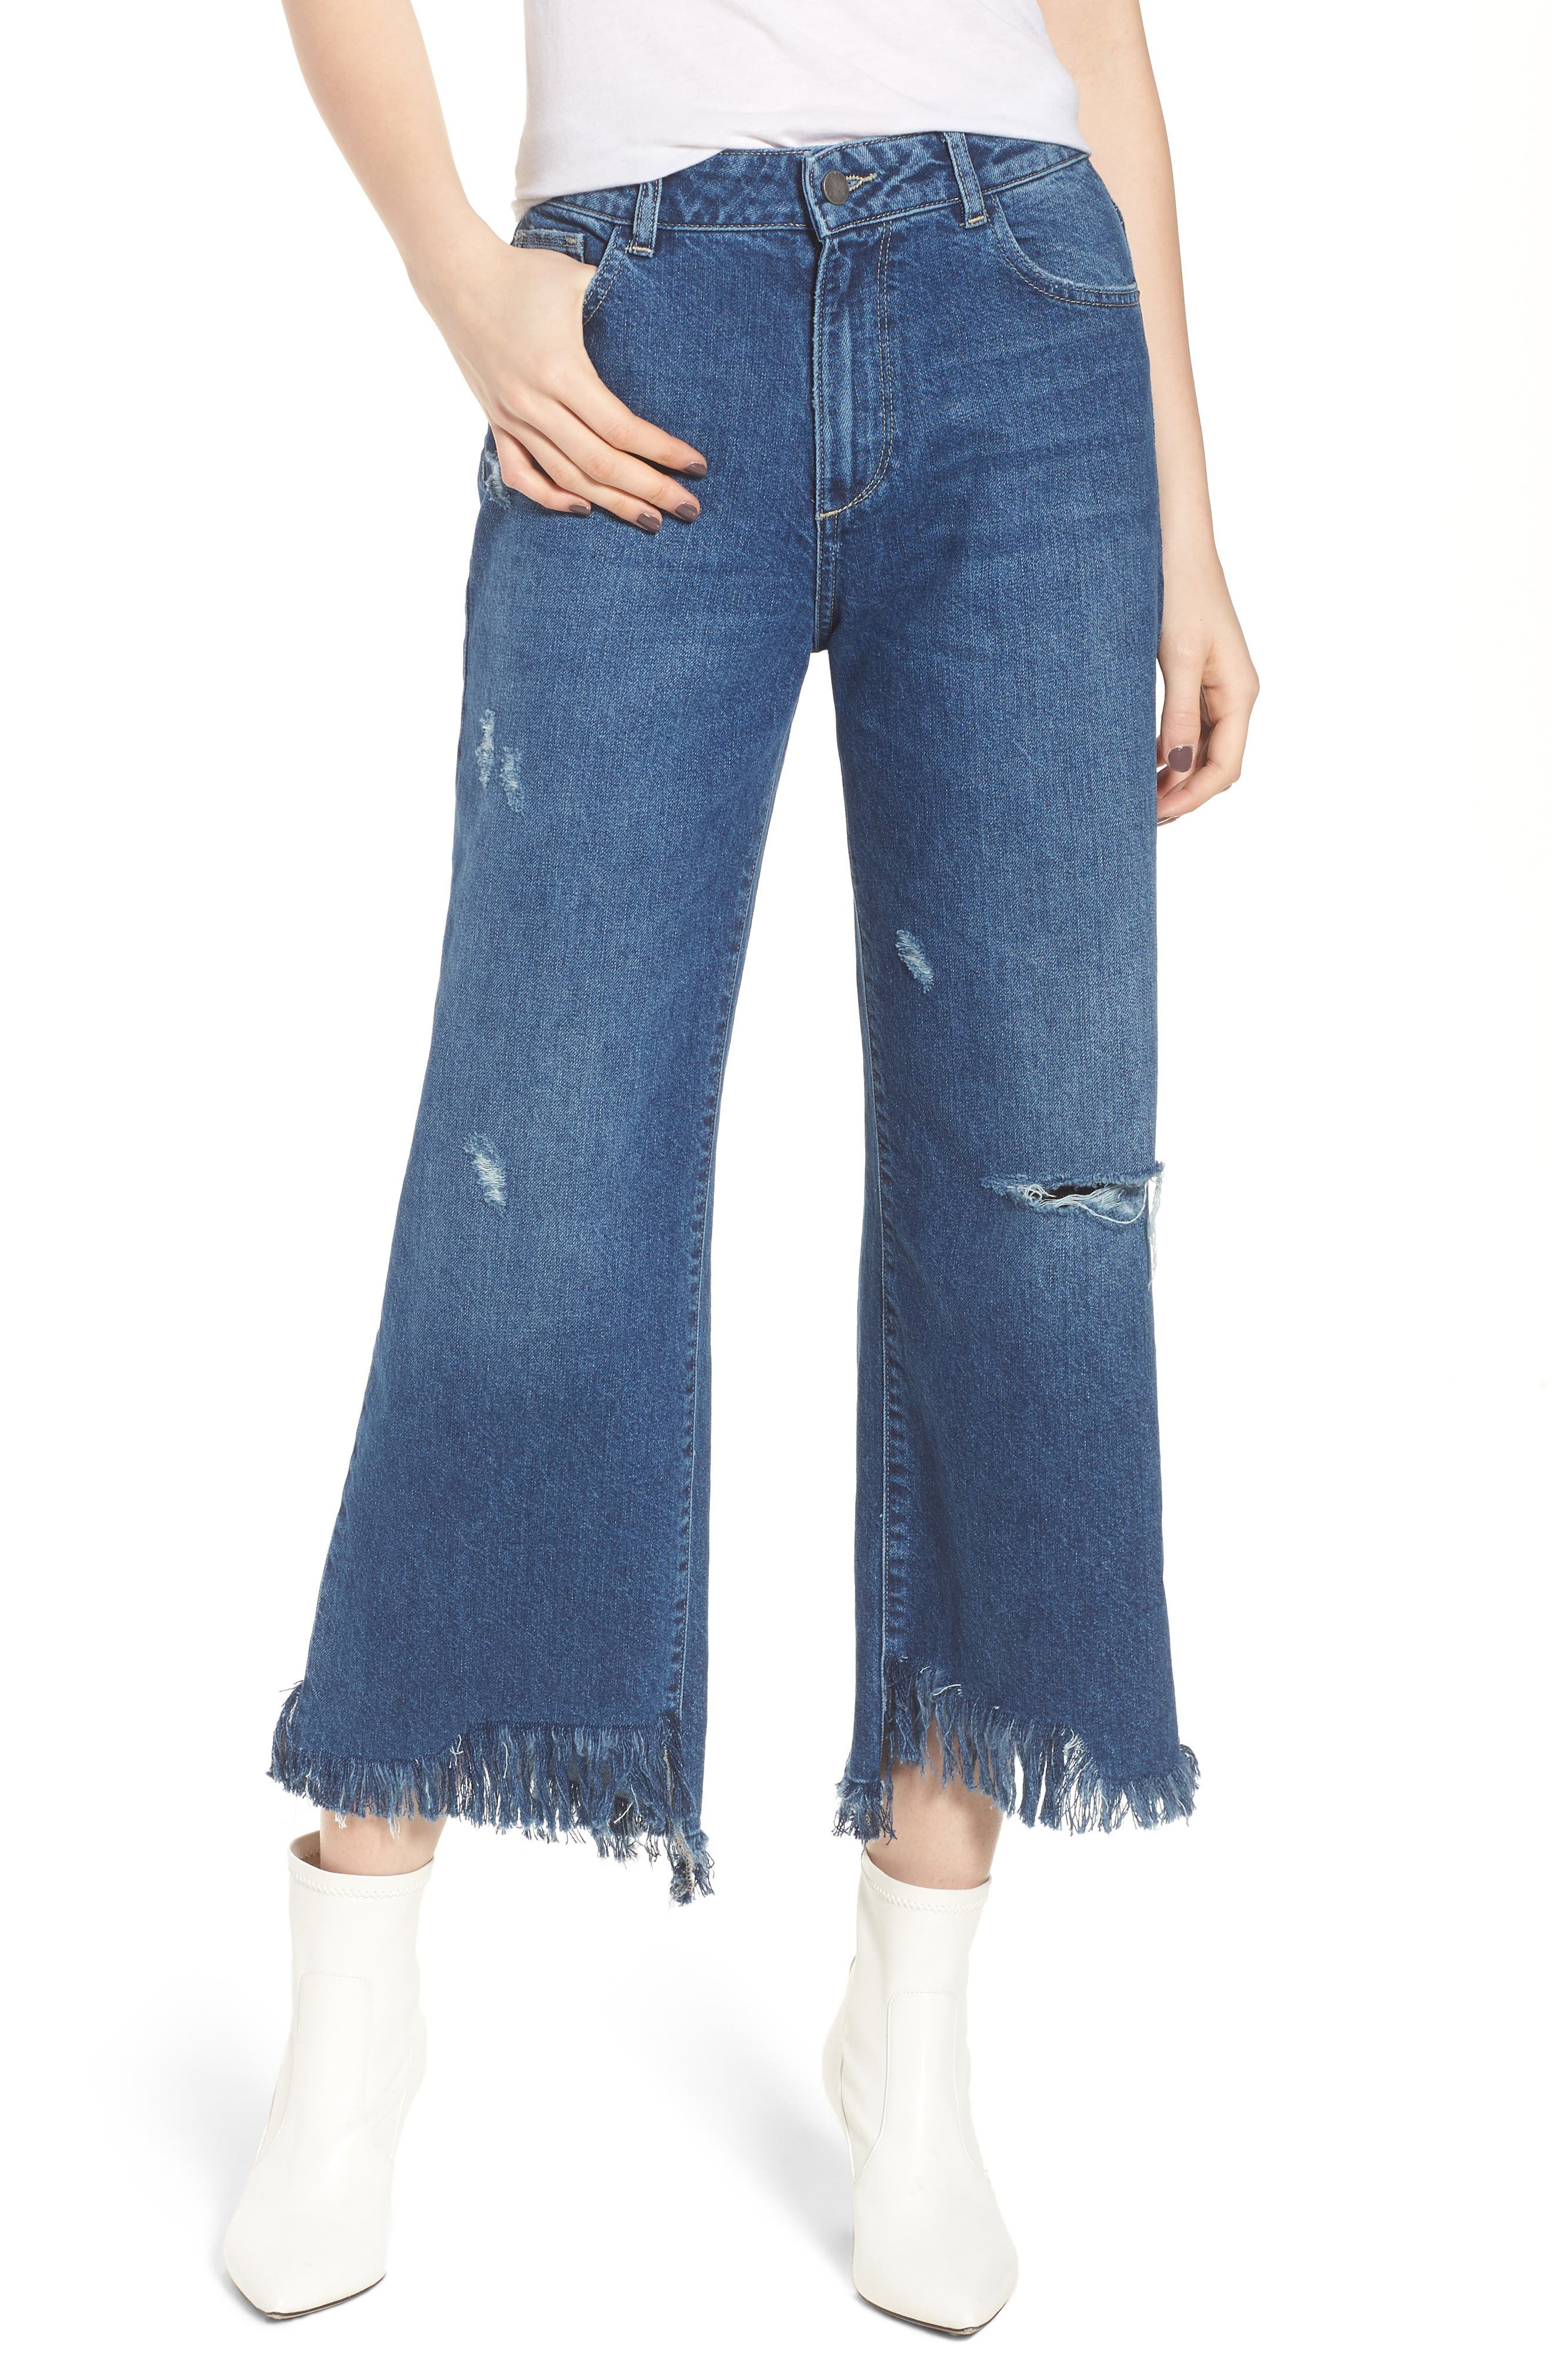 Hepburn High Waist Wide Leg Jeans,                             Main thumbnail 1, color,                             Goldfield